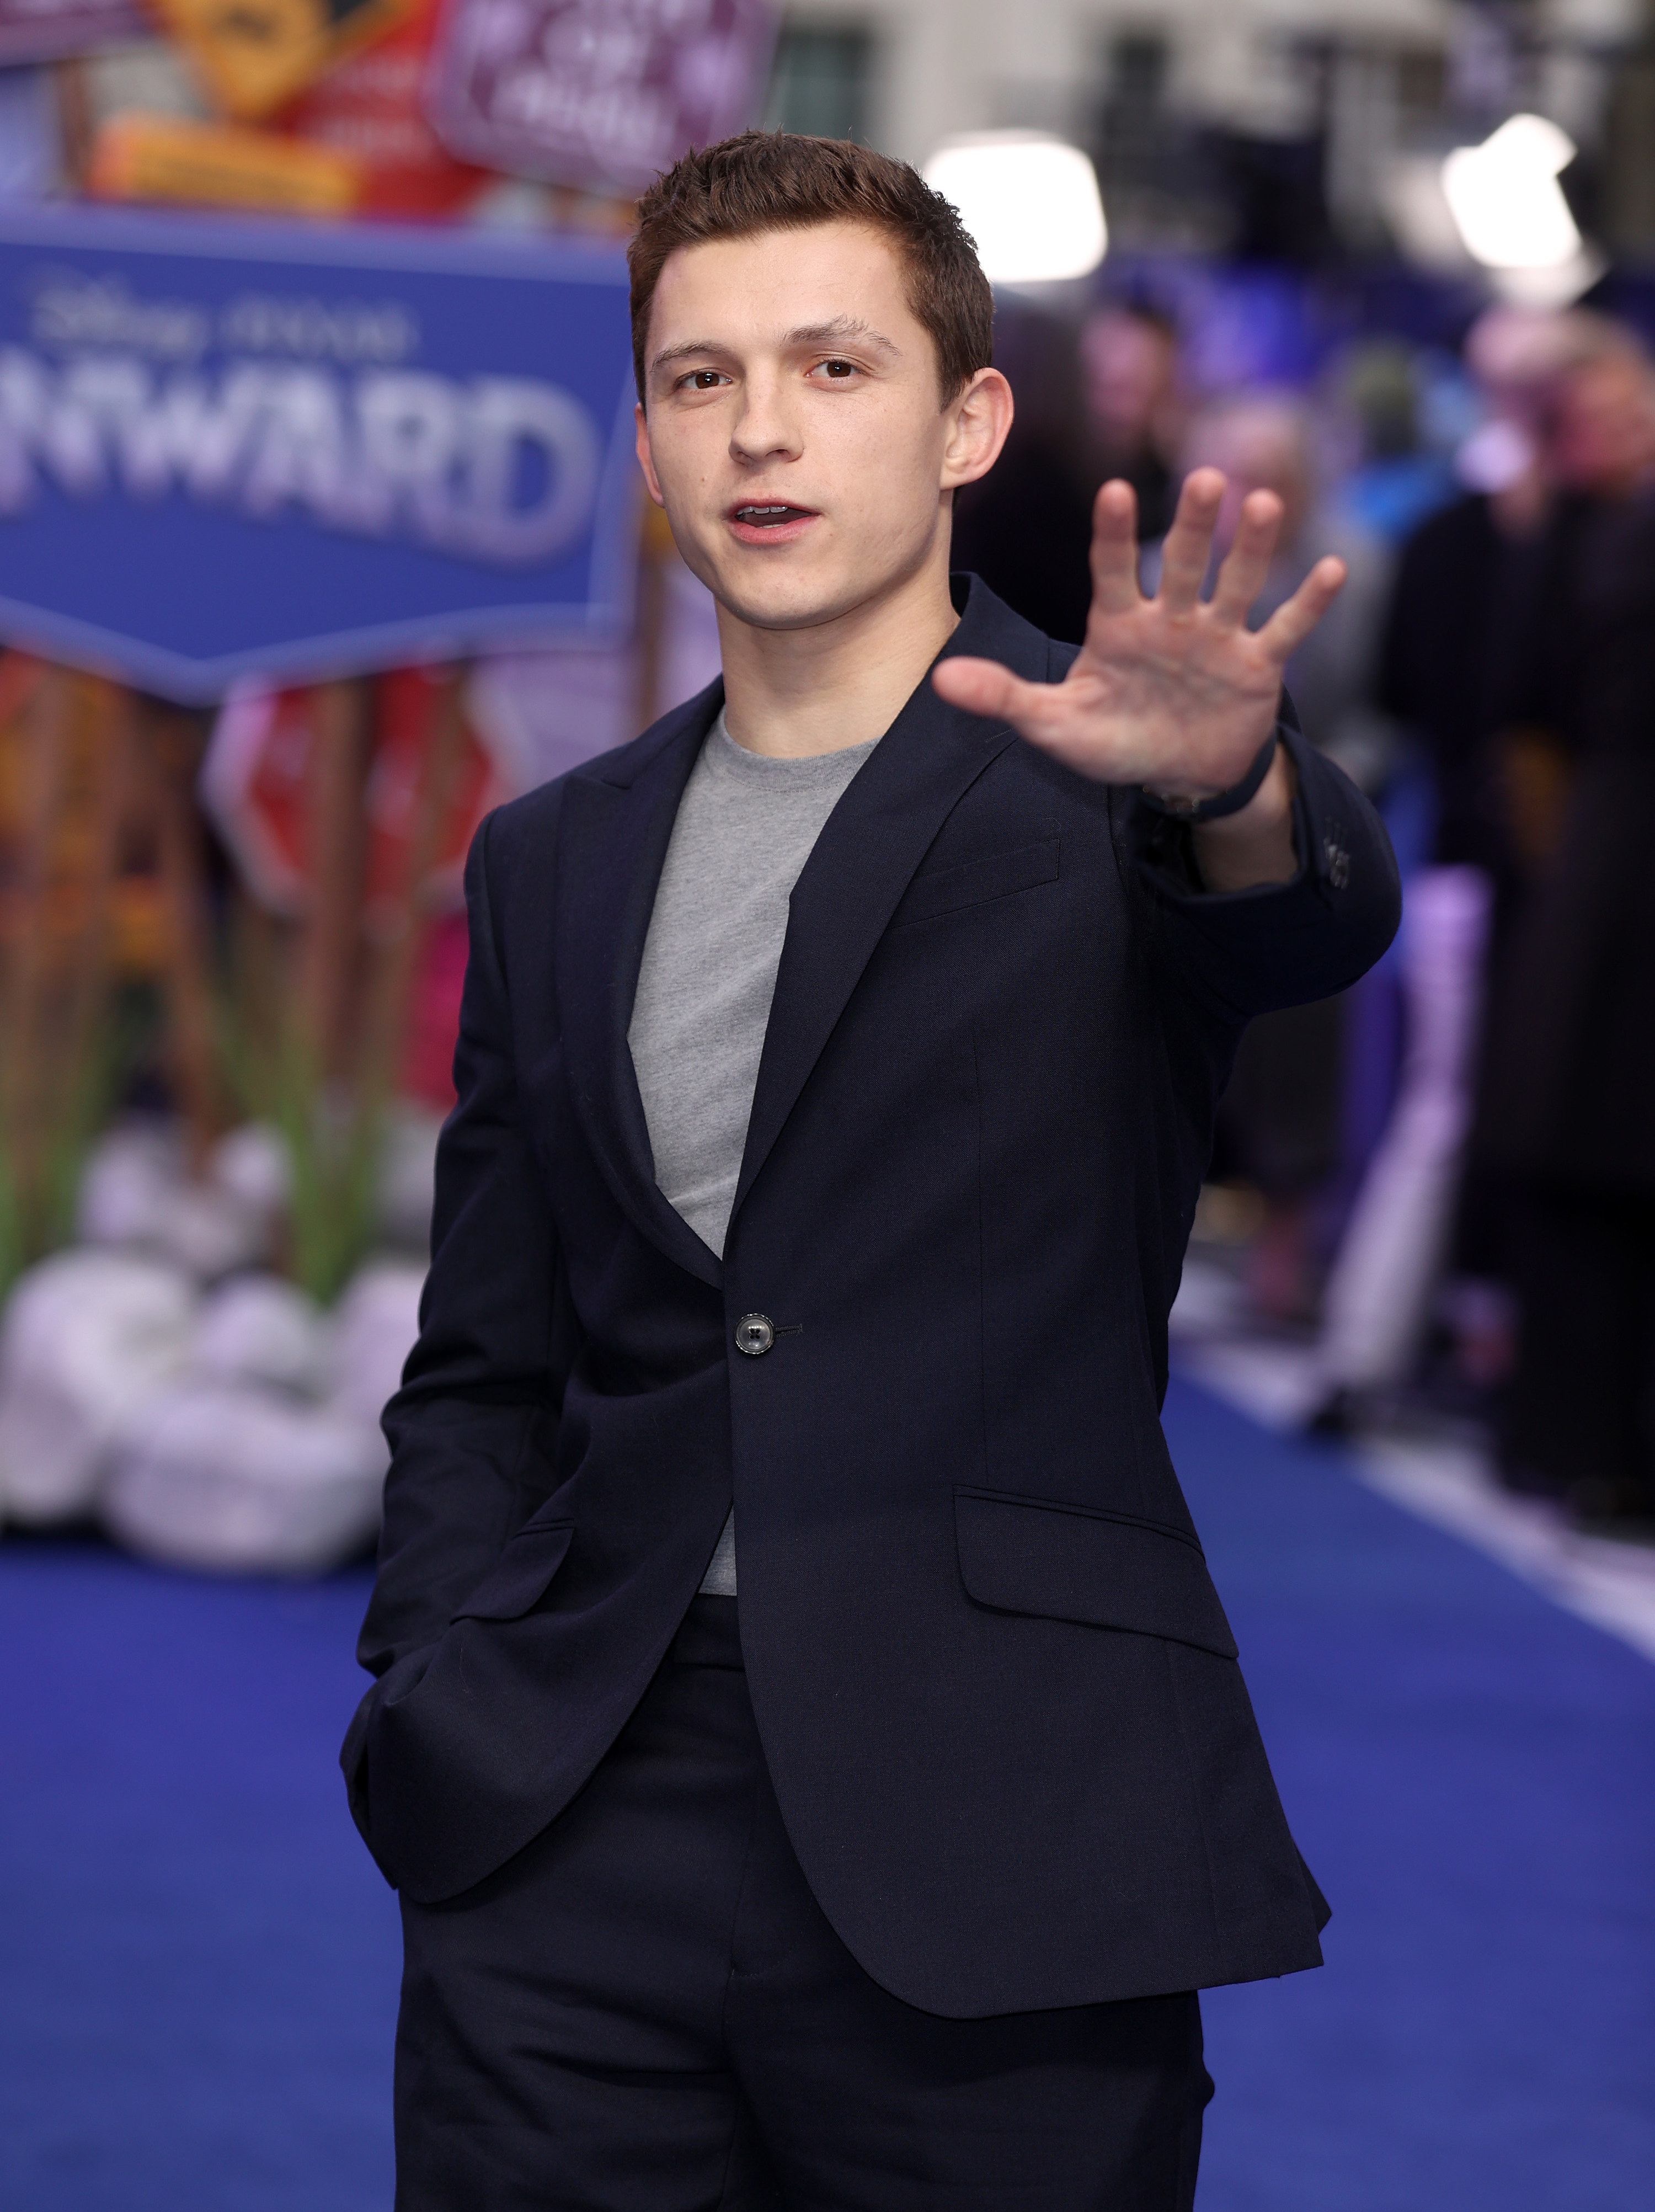 Tom Holland holding his arm up on the red carpet of a premier